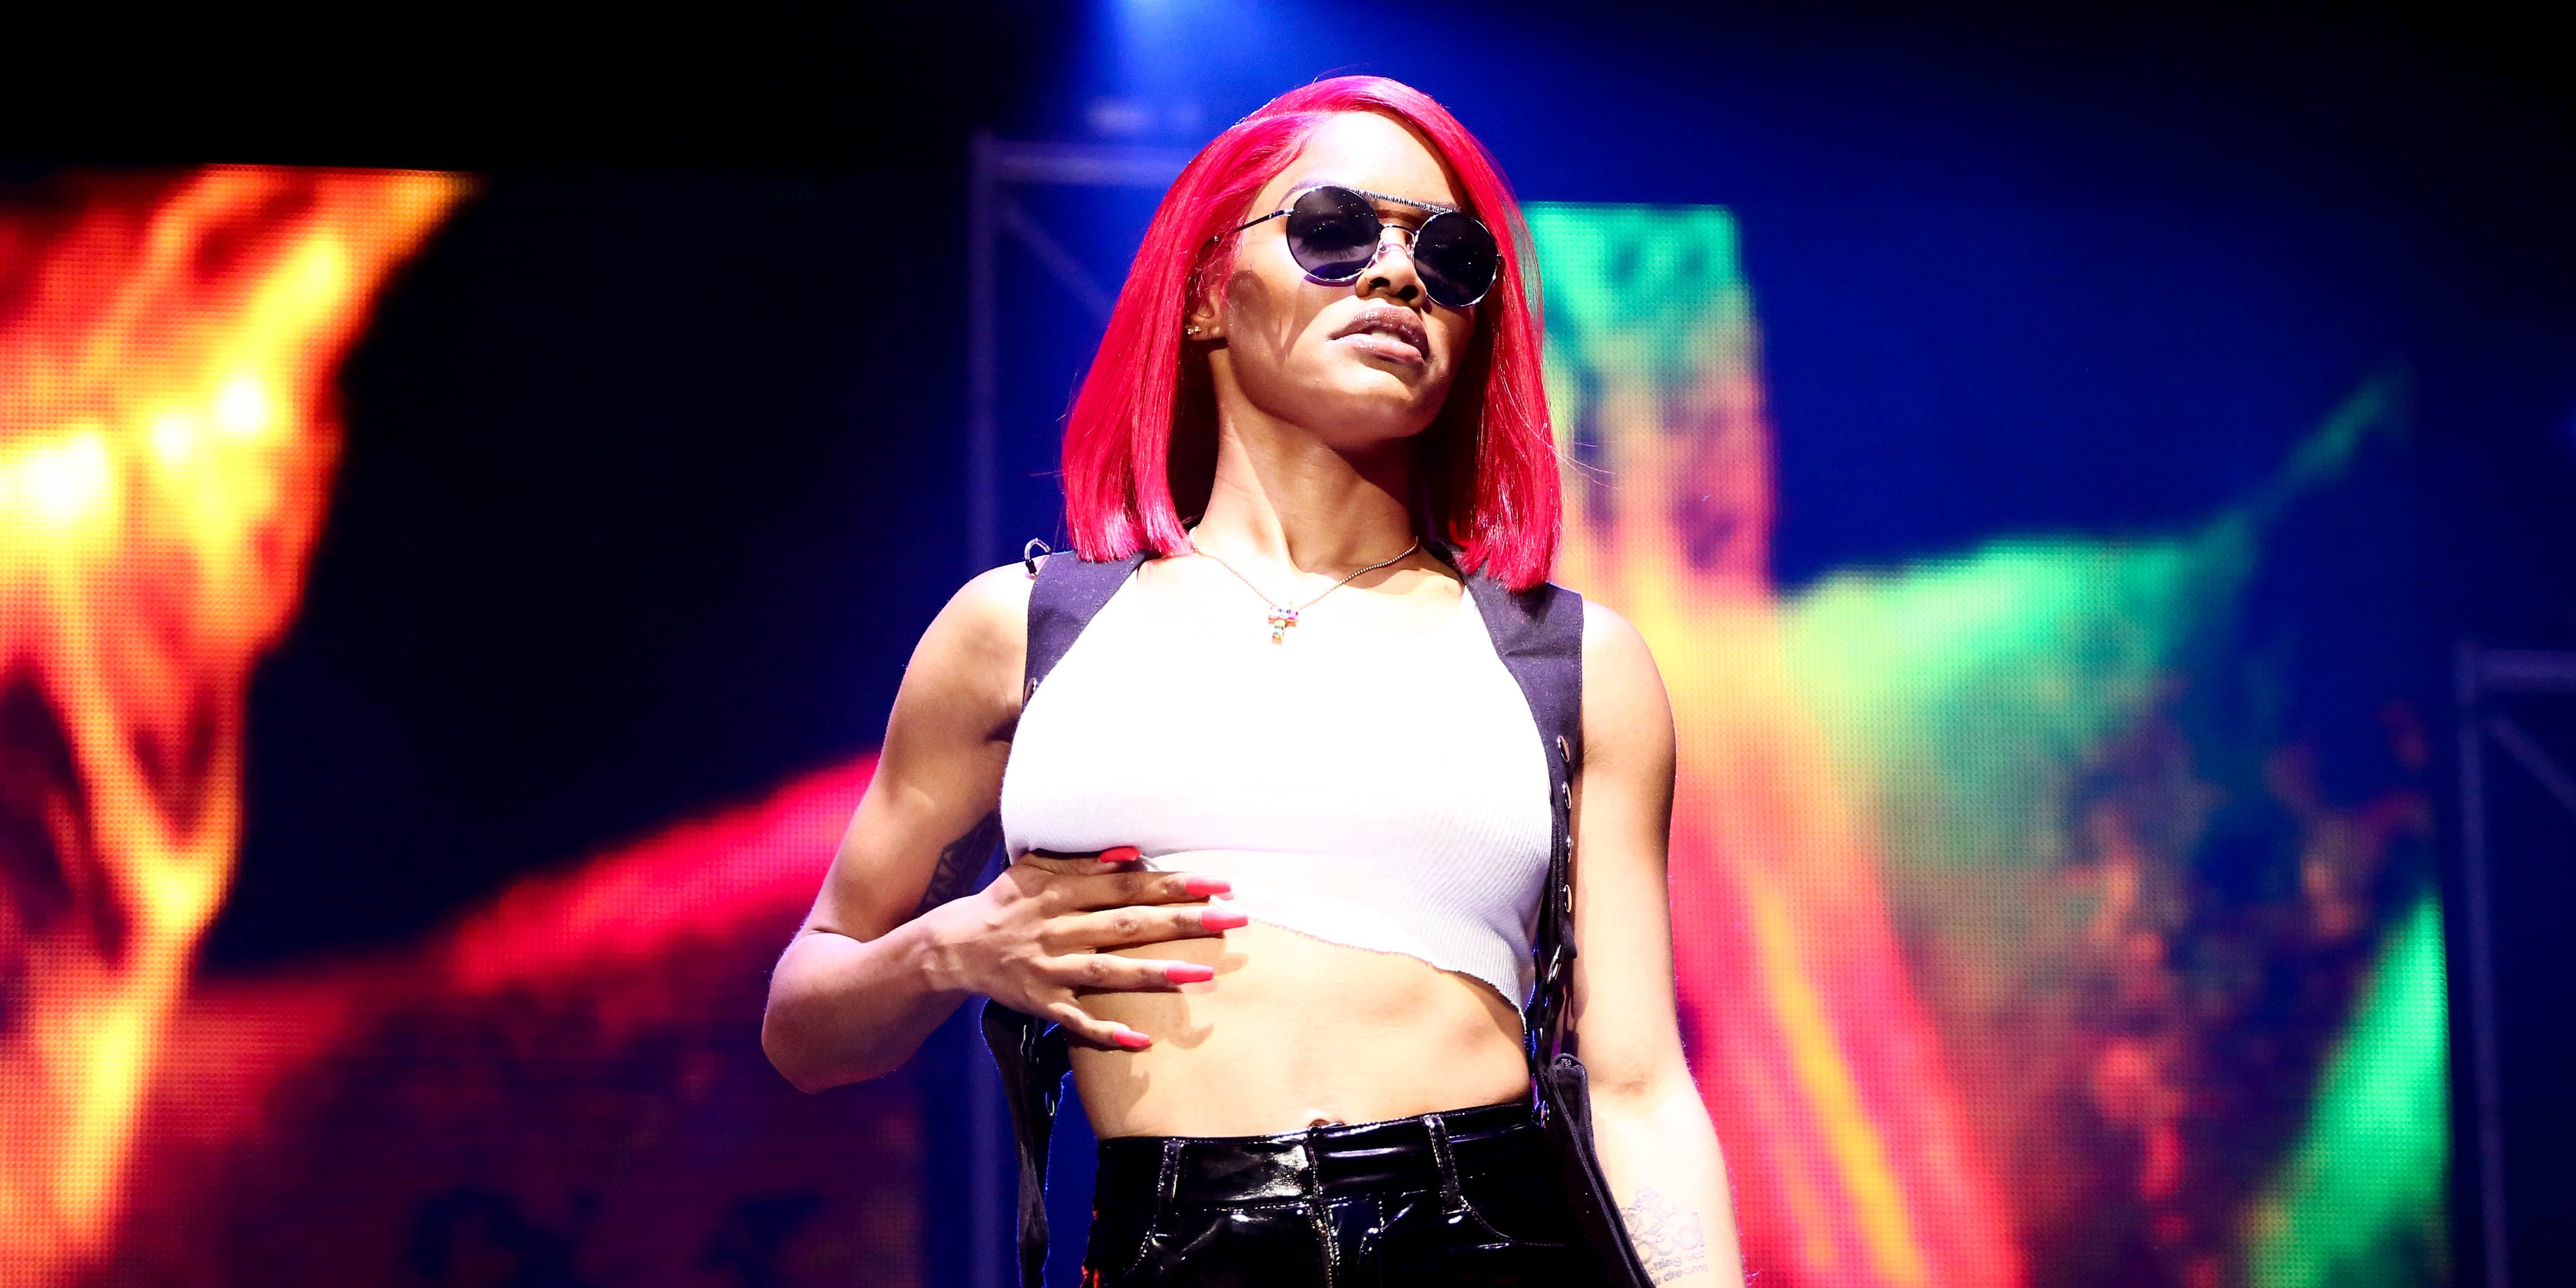 LOS ANGELES, CA - JUNE 22: Teyana Taylor performs at the 2018 BET Experience Staples Center Concert, sponsored by COCA-COLA, at L.A. Live on June 22, 2018 in Los Angeles, California. (Photo by Ser Baffo via Getty Images for BET)